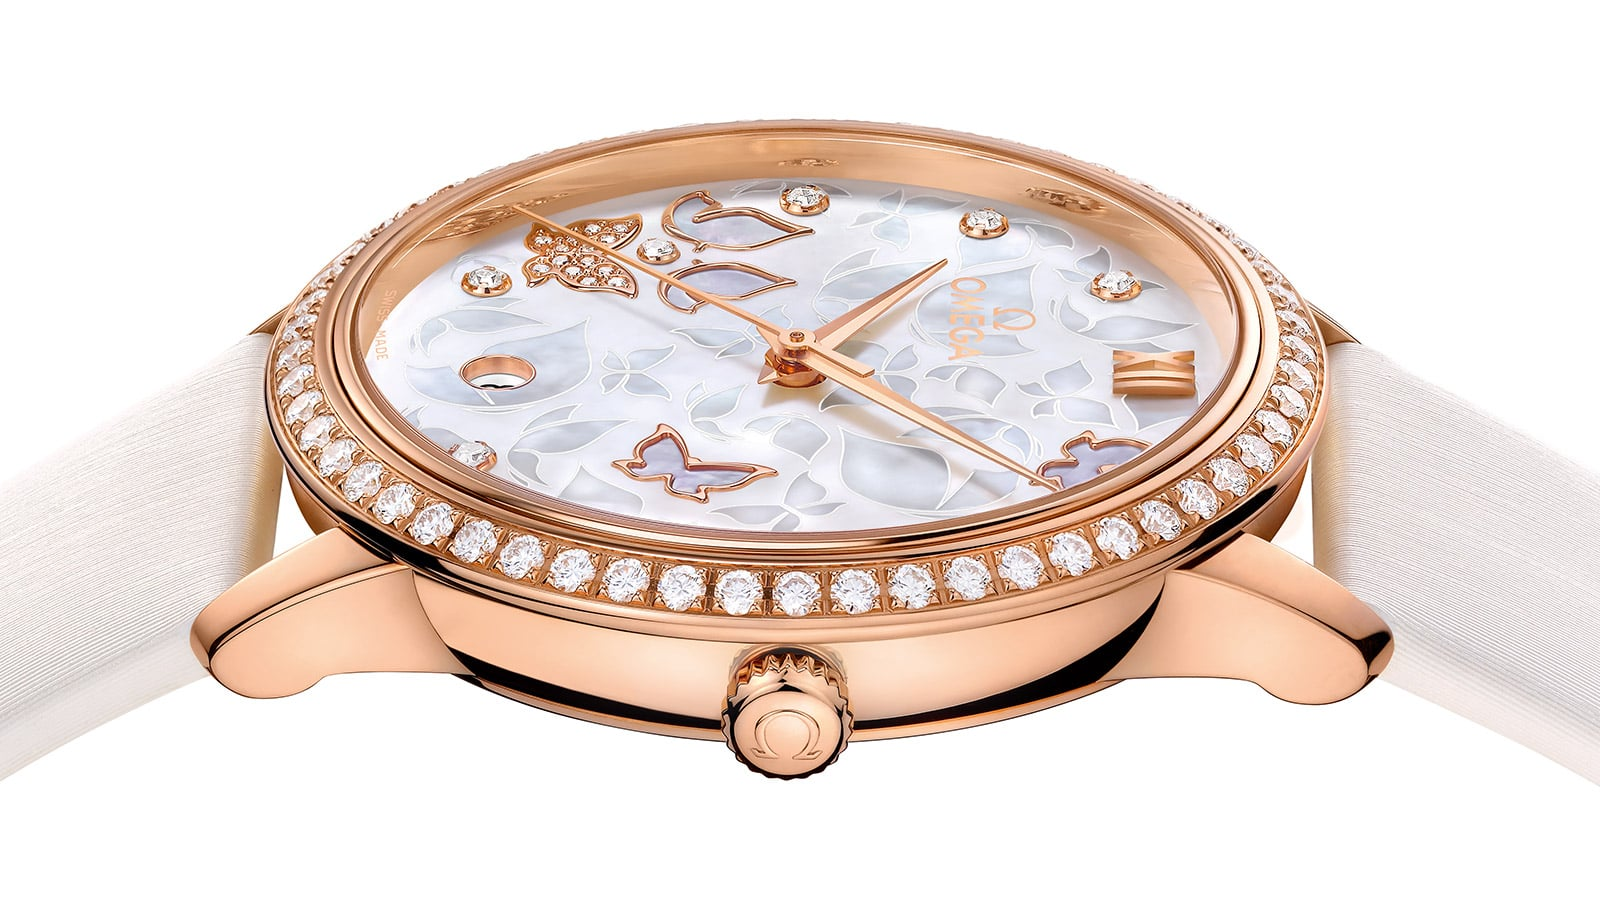 Side view of a Prestige Butterfly rose gold watch and its crown engraved with an Omega logo